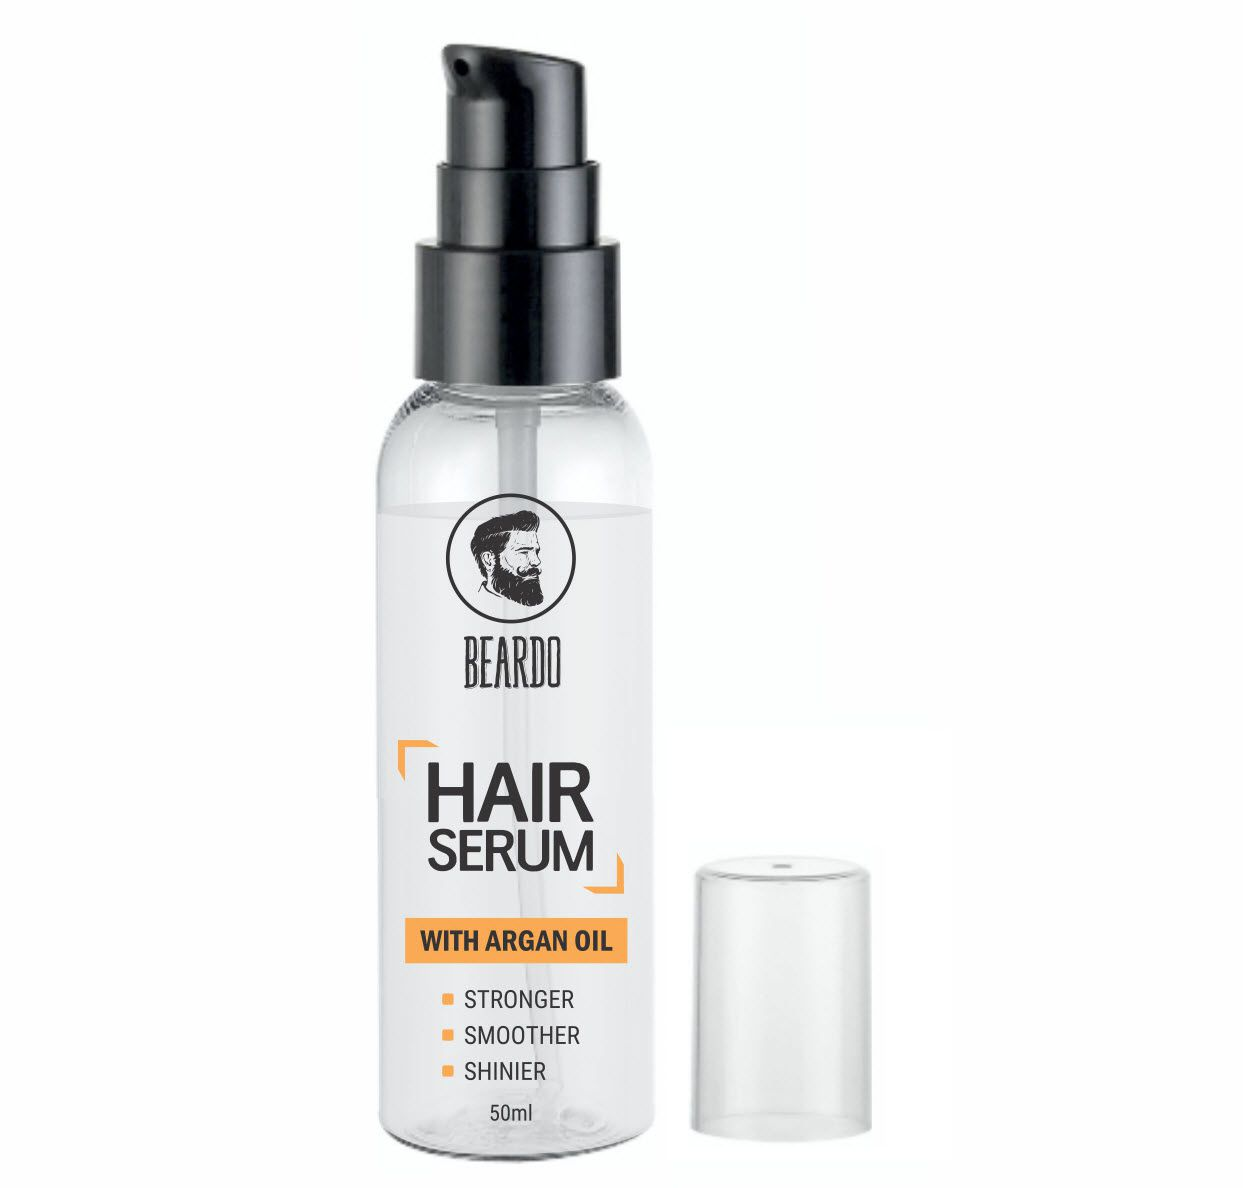 Beardo Hair Serum Fights Greying Of Hair 50ml Buy